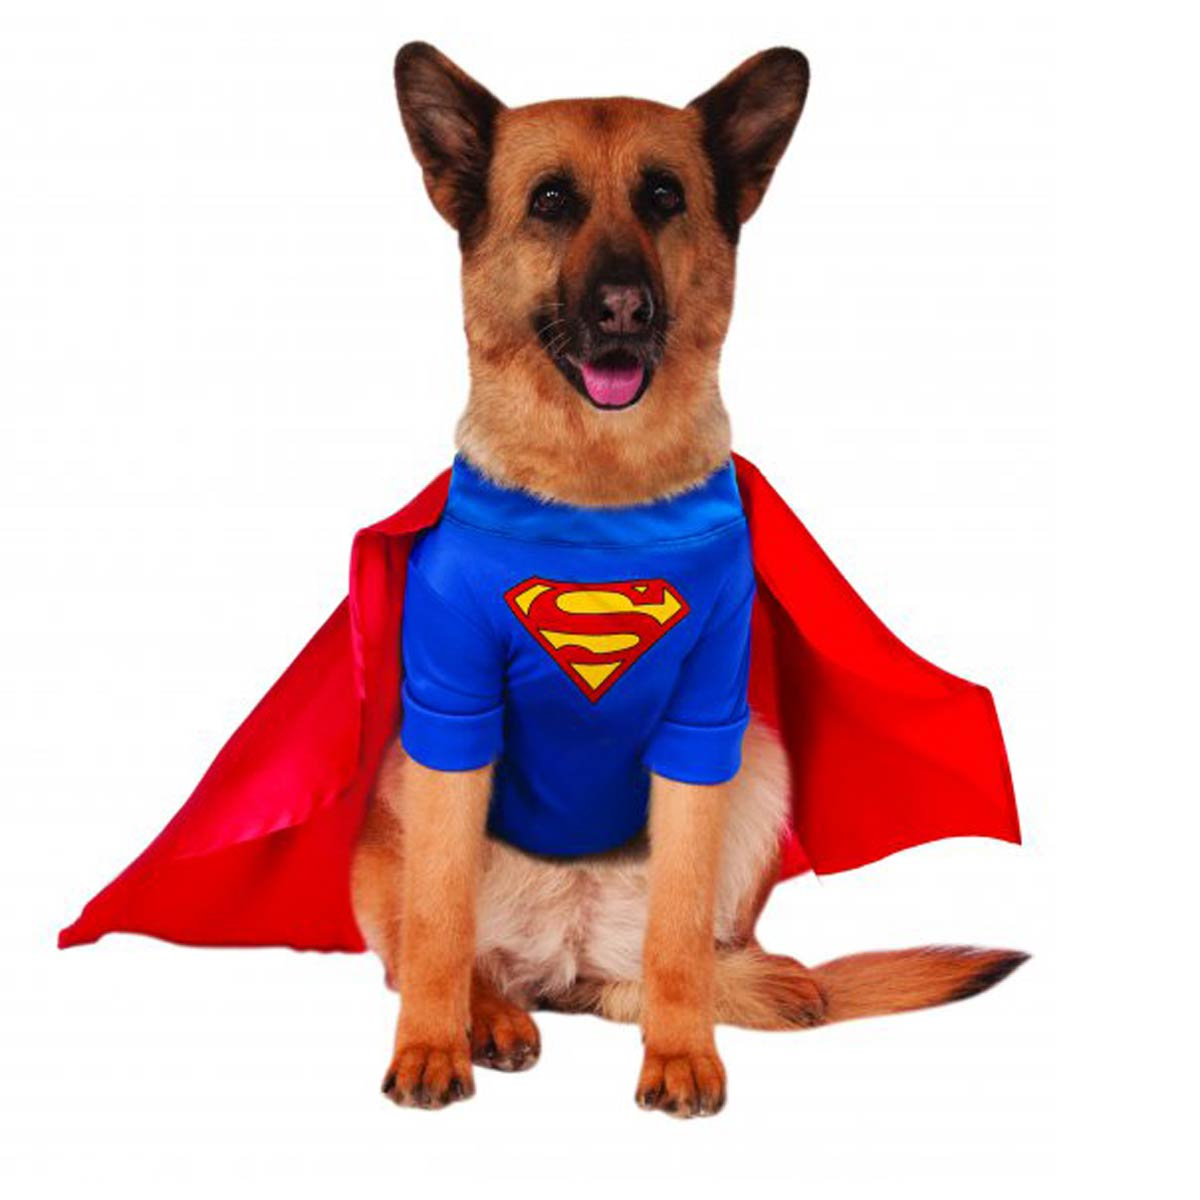 Superman Dog Halloween Costume by Rubies - Big Dog Edition